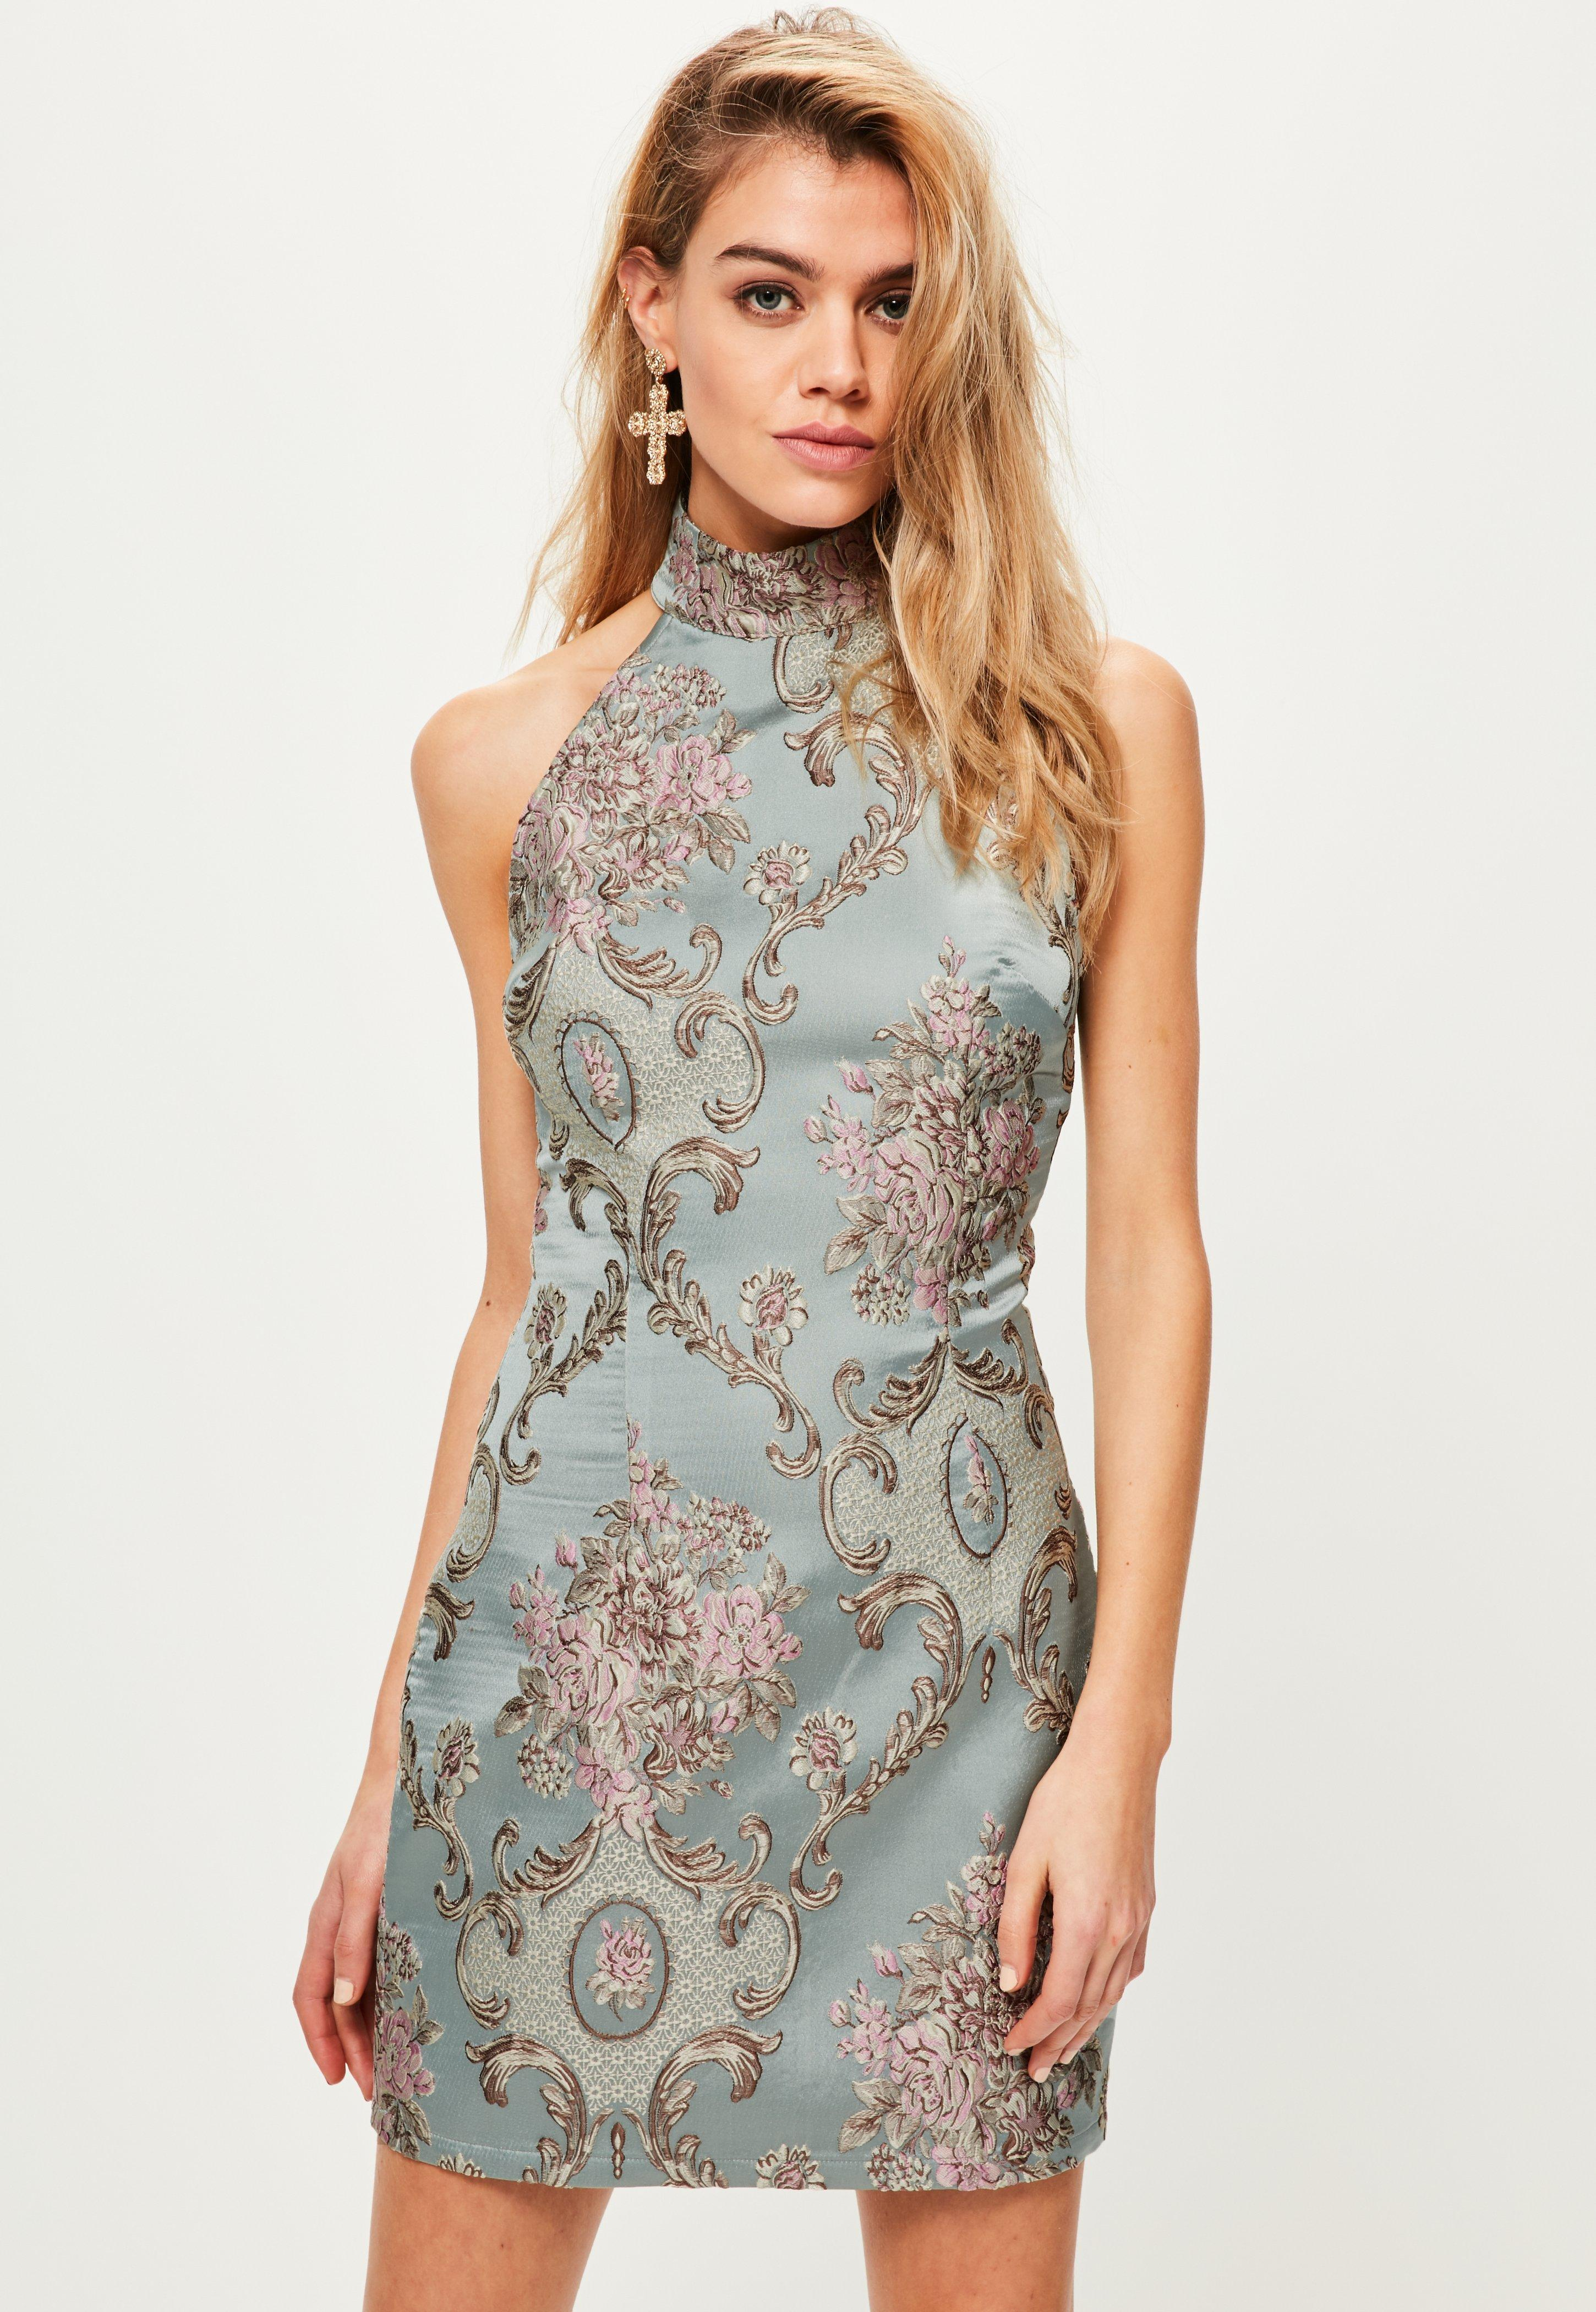 Wedding Bodycon Homecoming Dresses bodycon dress long sleeved dresses missguided blue brocade high neck dress